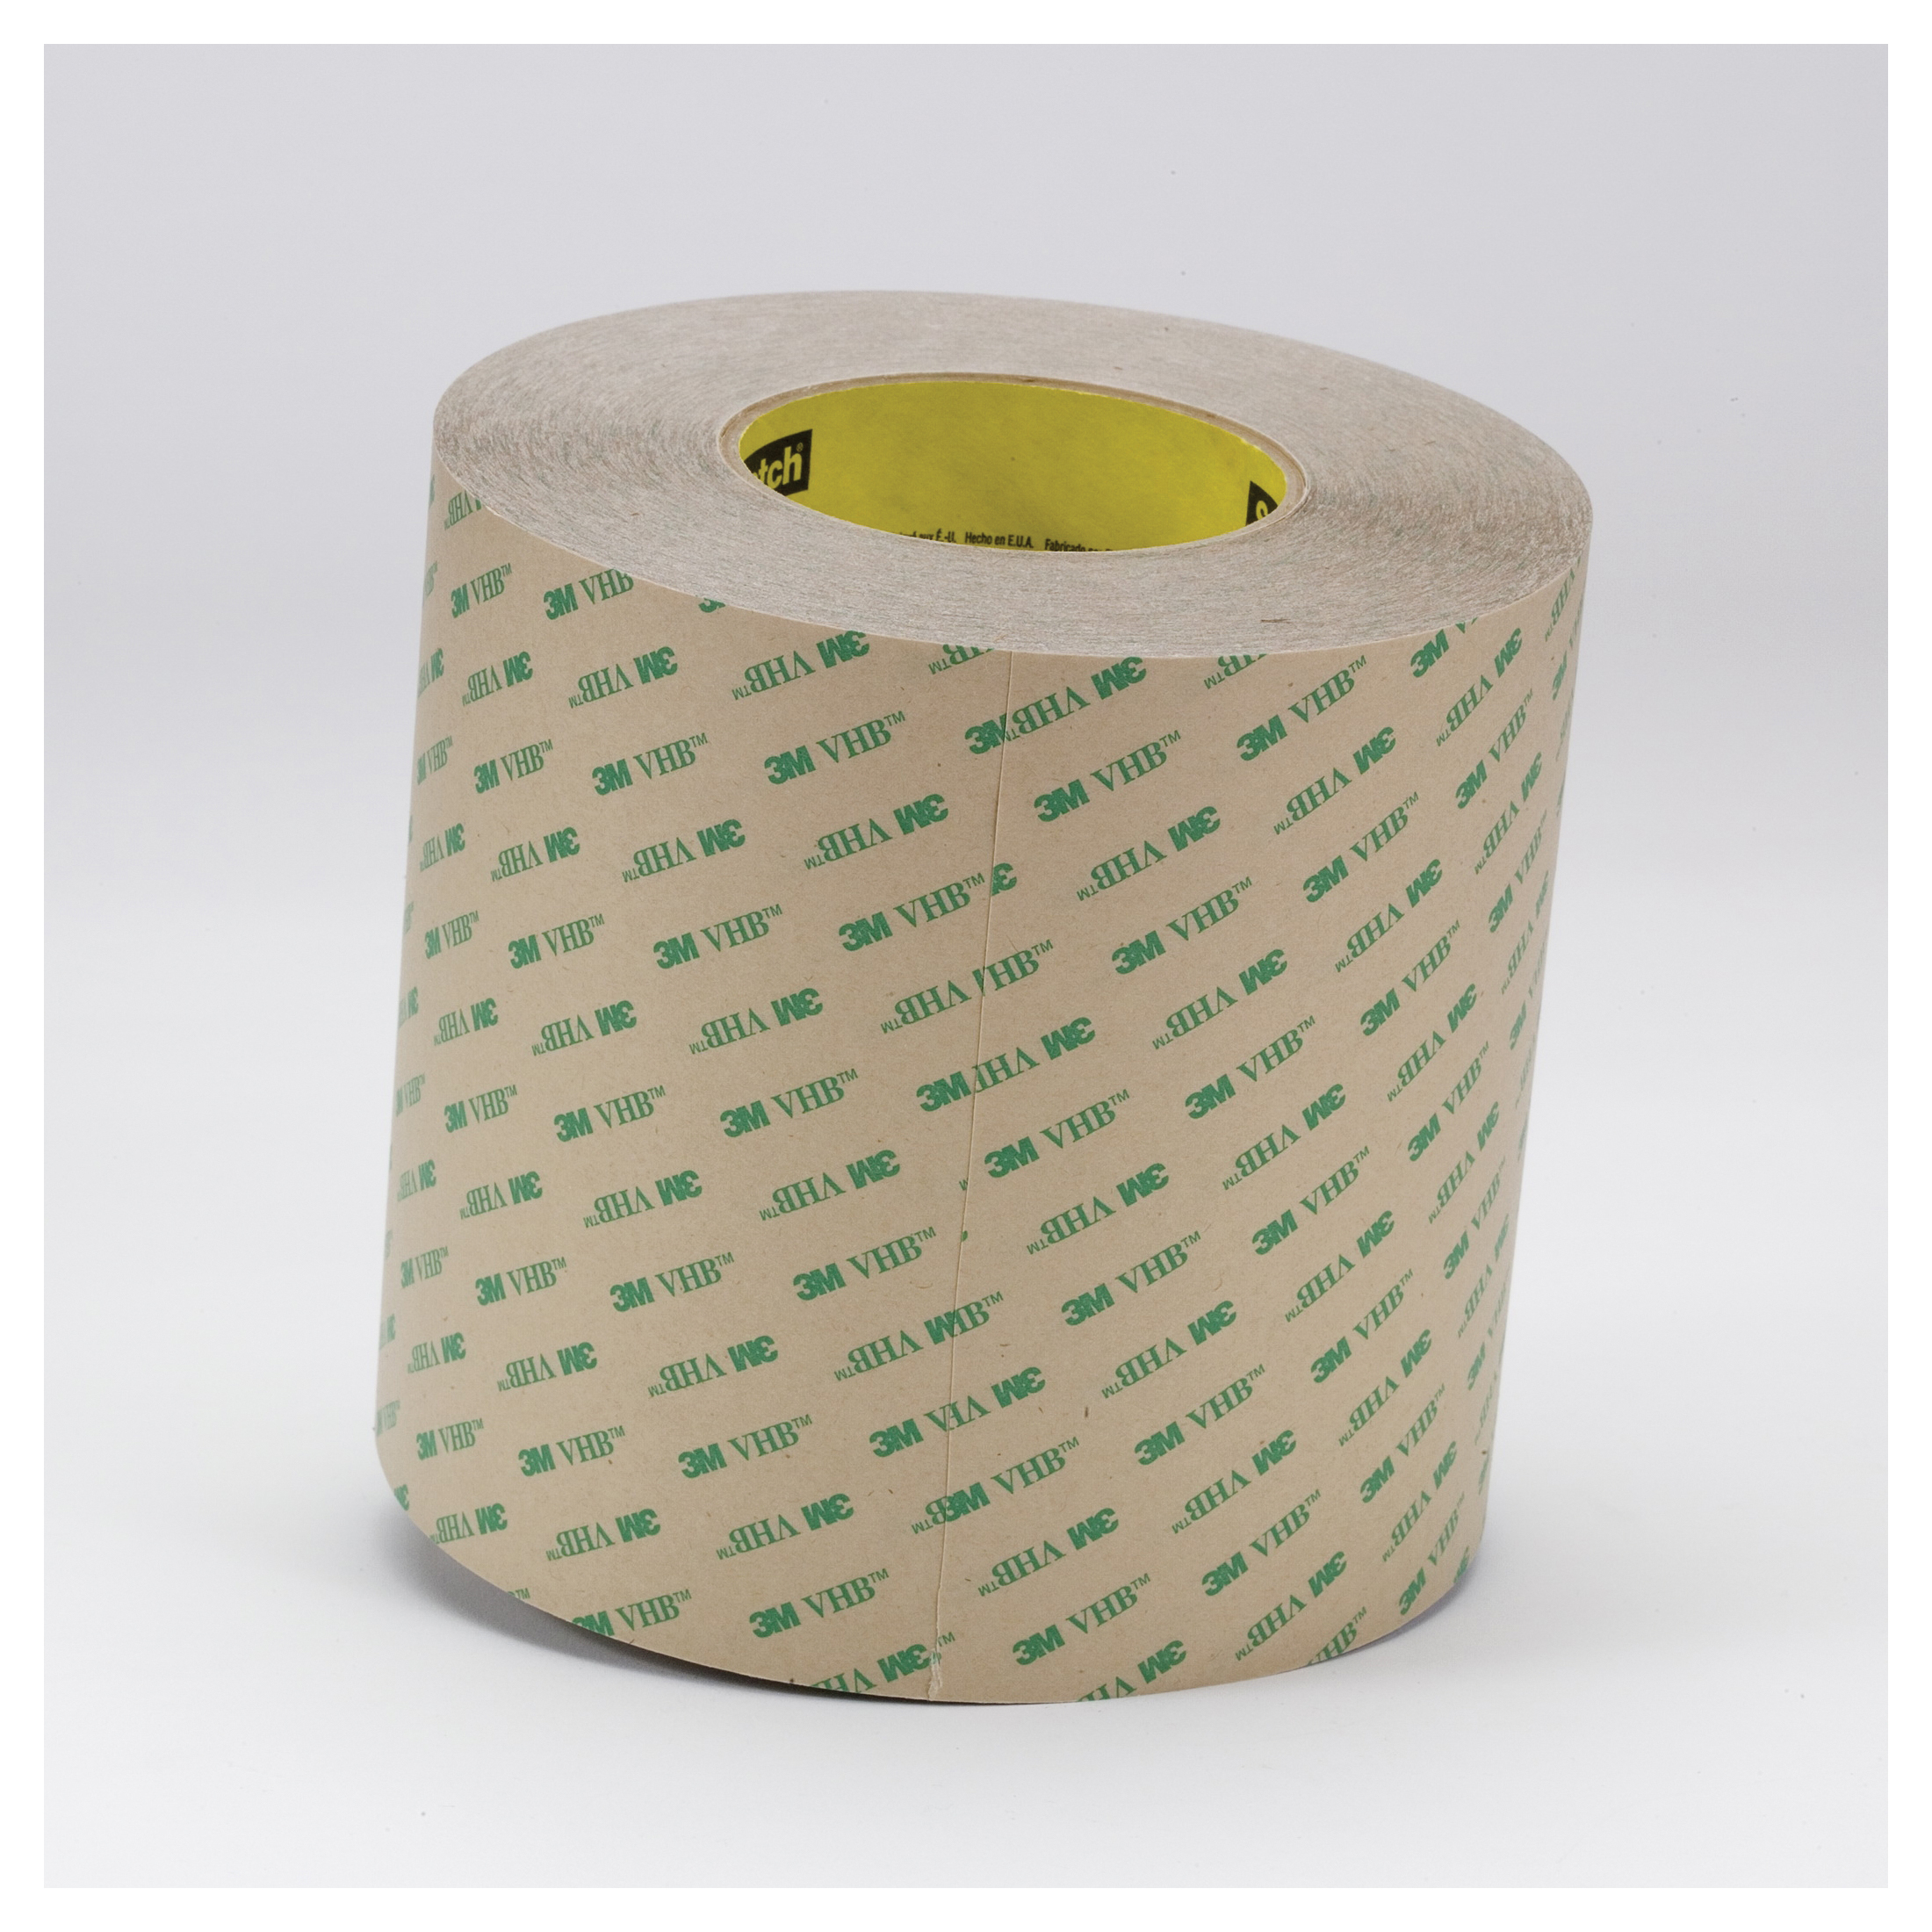 3M™ VHB™ 021200-13976 High Performance Low Track Adhesive Transfer Tape, 60 yd L x 1 in W, 6.2 mil THK, 2 mil 100MP Acrylic Adhesive, Clear